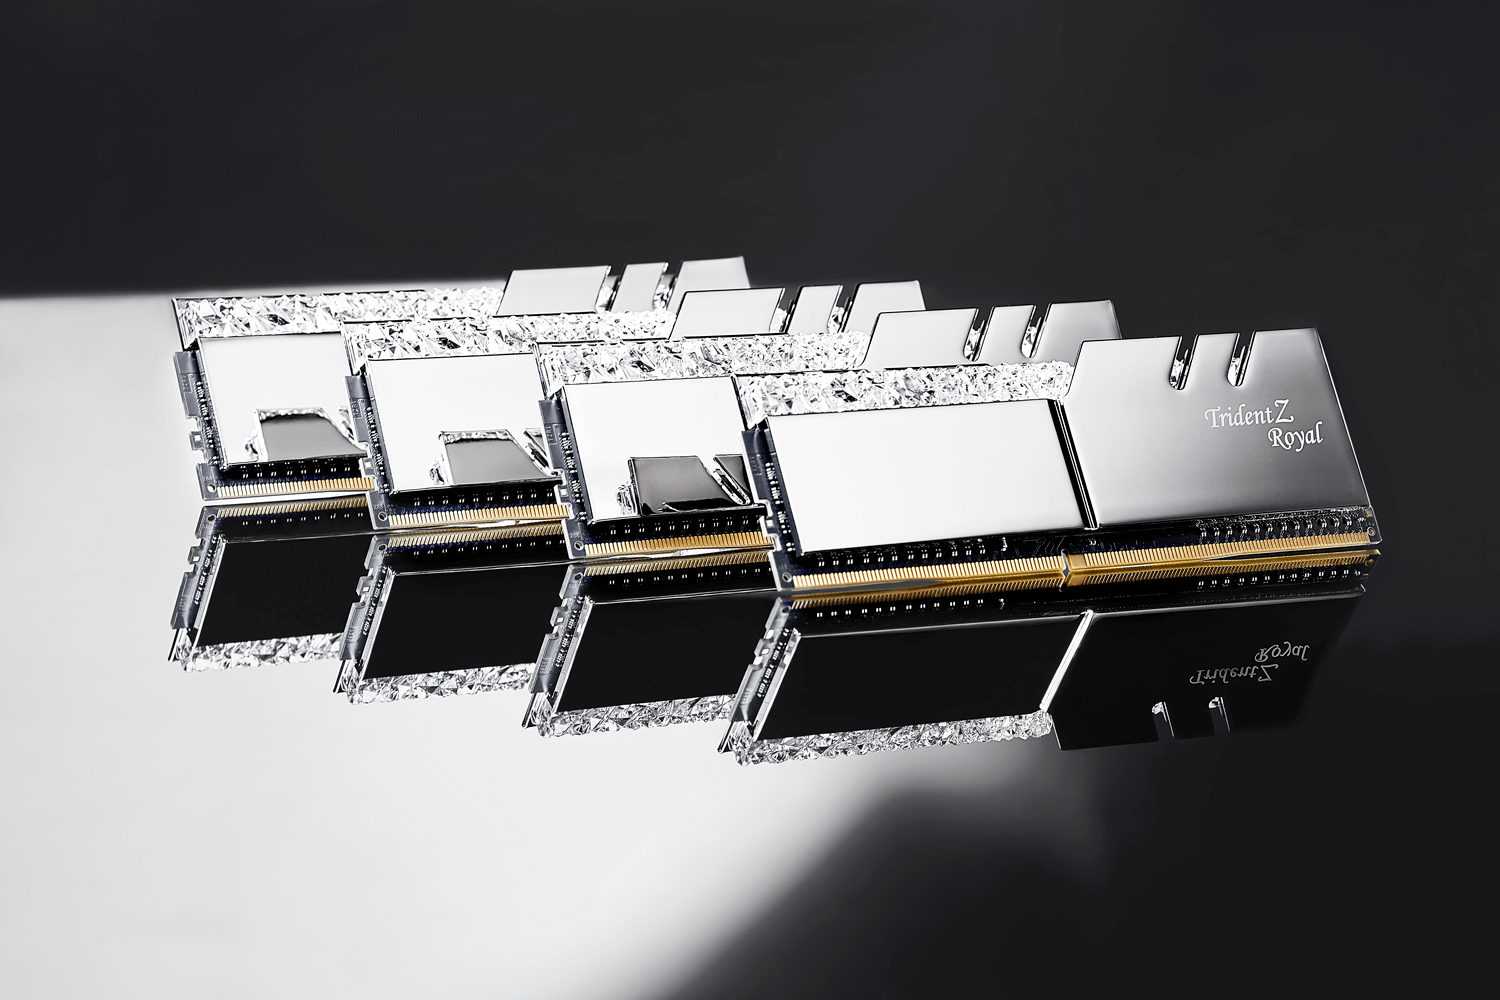 G Skill introduces the Trident Z Royal Series with crystals and RGB